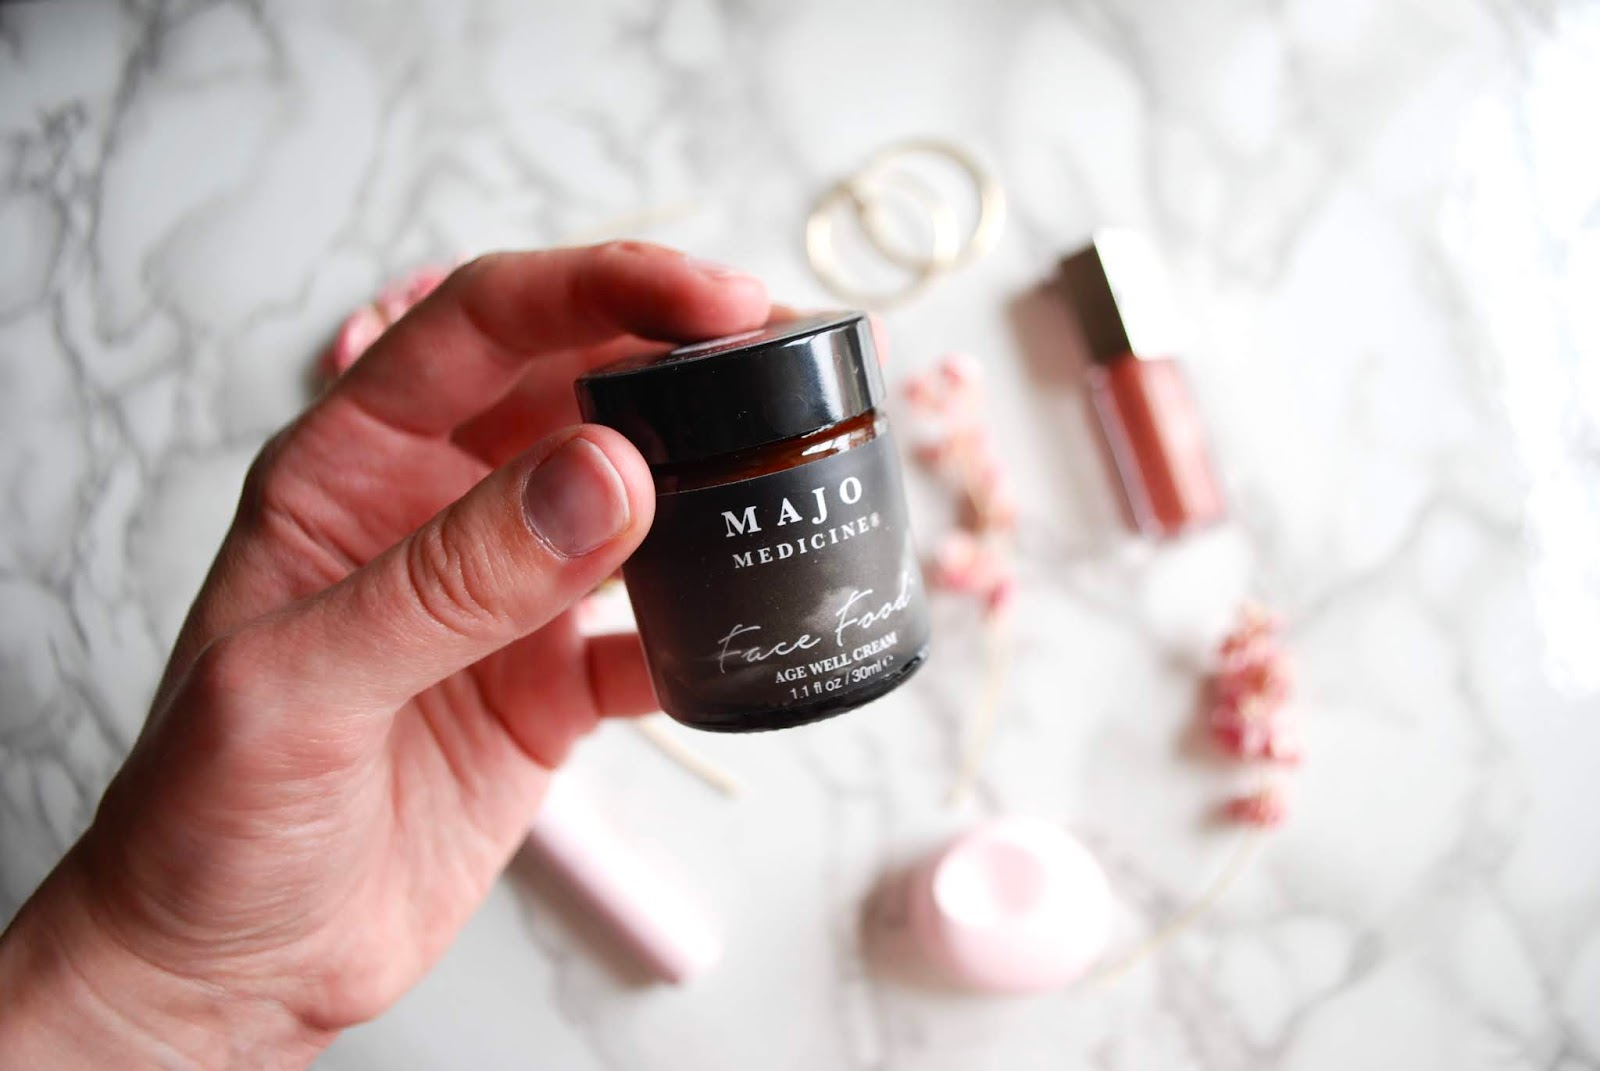 majo medicine skin food sensitive skin cream review